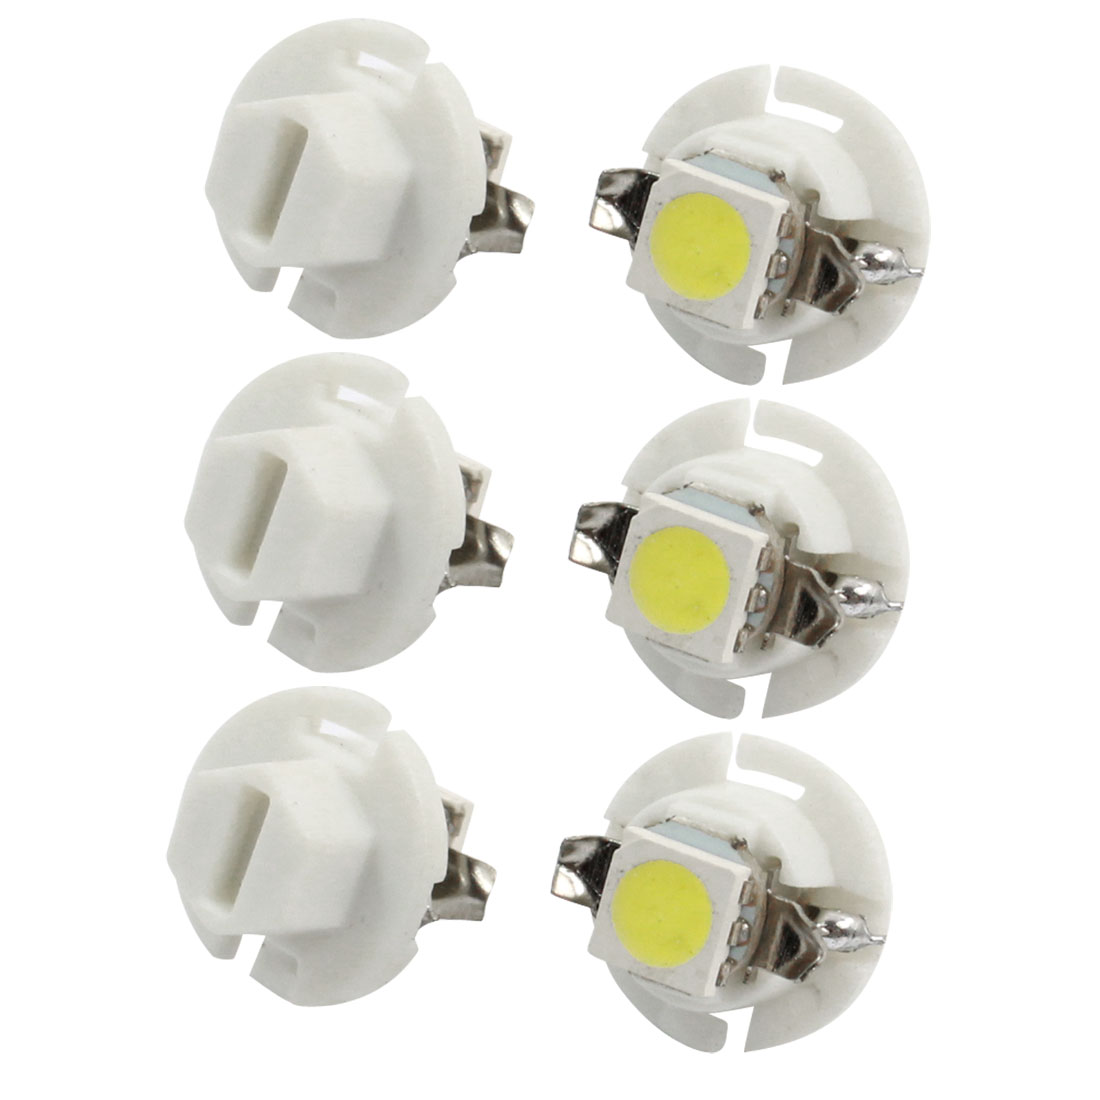 6 Pcs T5 B8.4D 5050 SMD 1-LED Dashboard Light Signal Bulb White for Car Internal